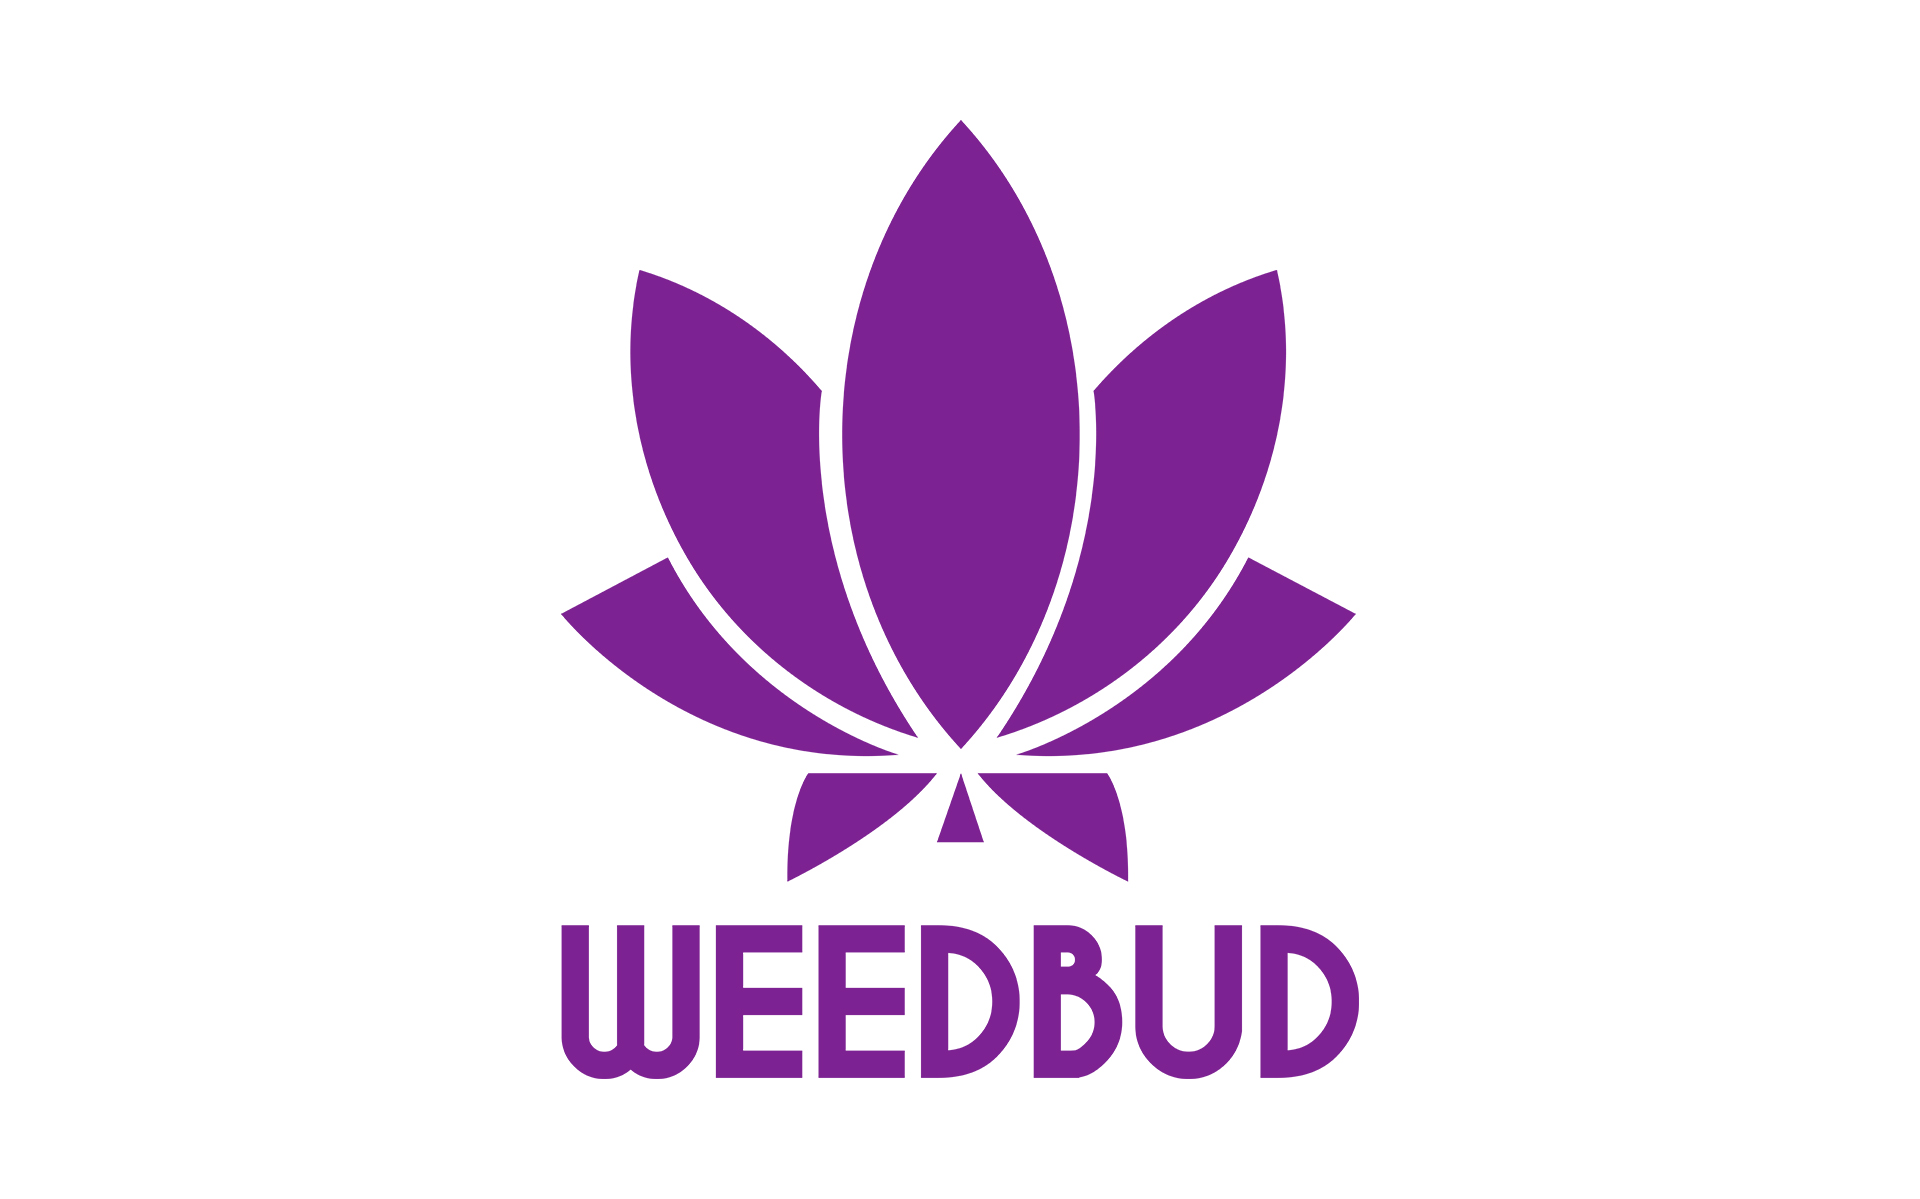 Weed Buddy Logo Purple with a Marijuana Leaf